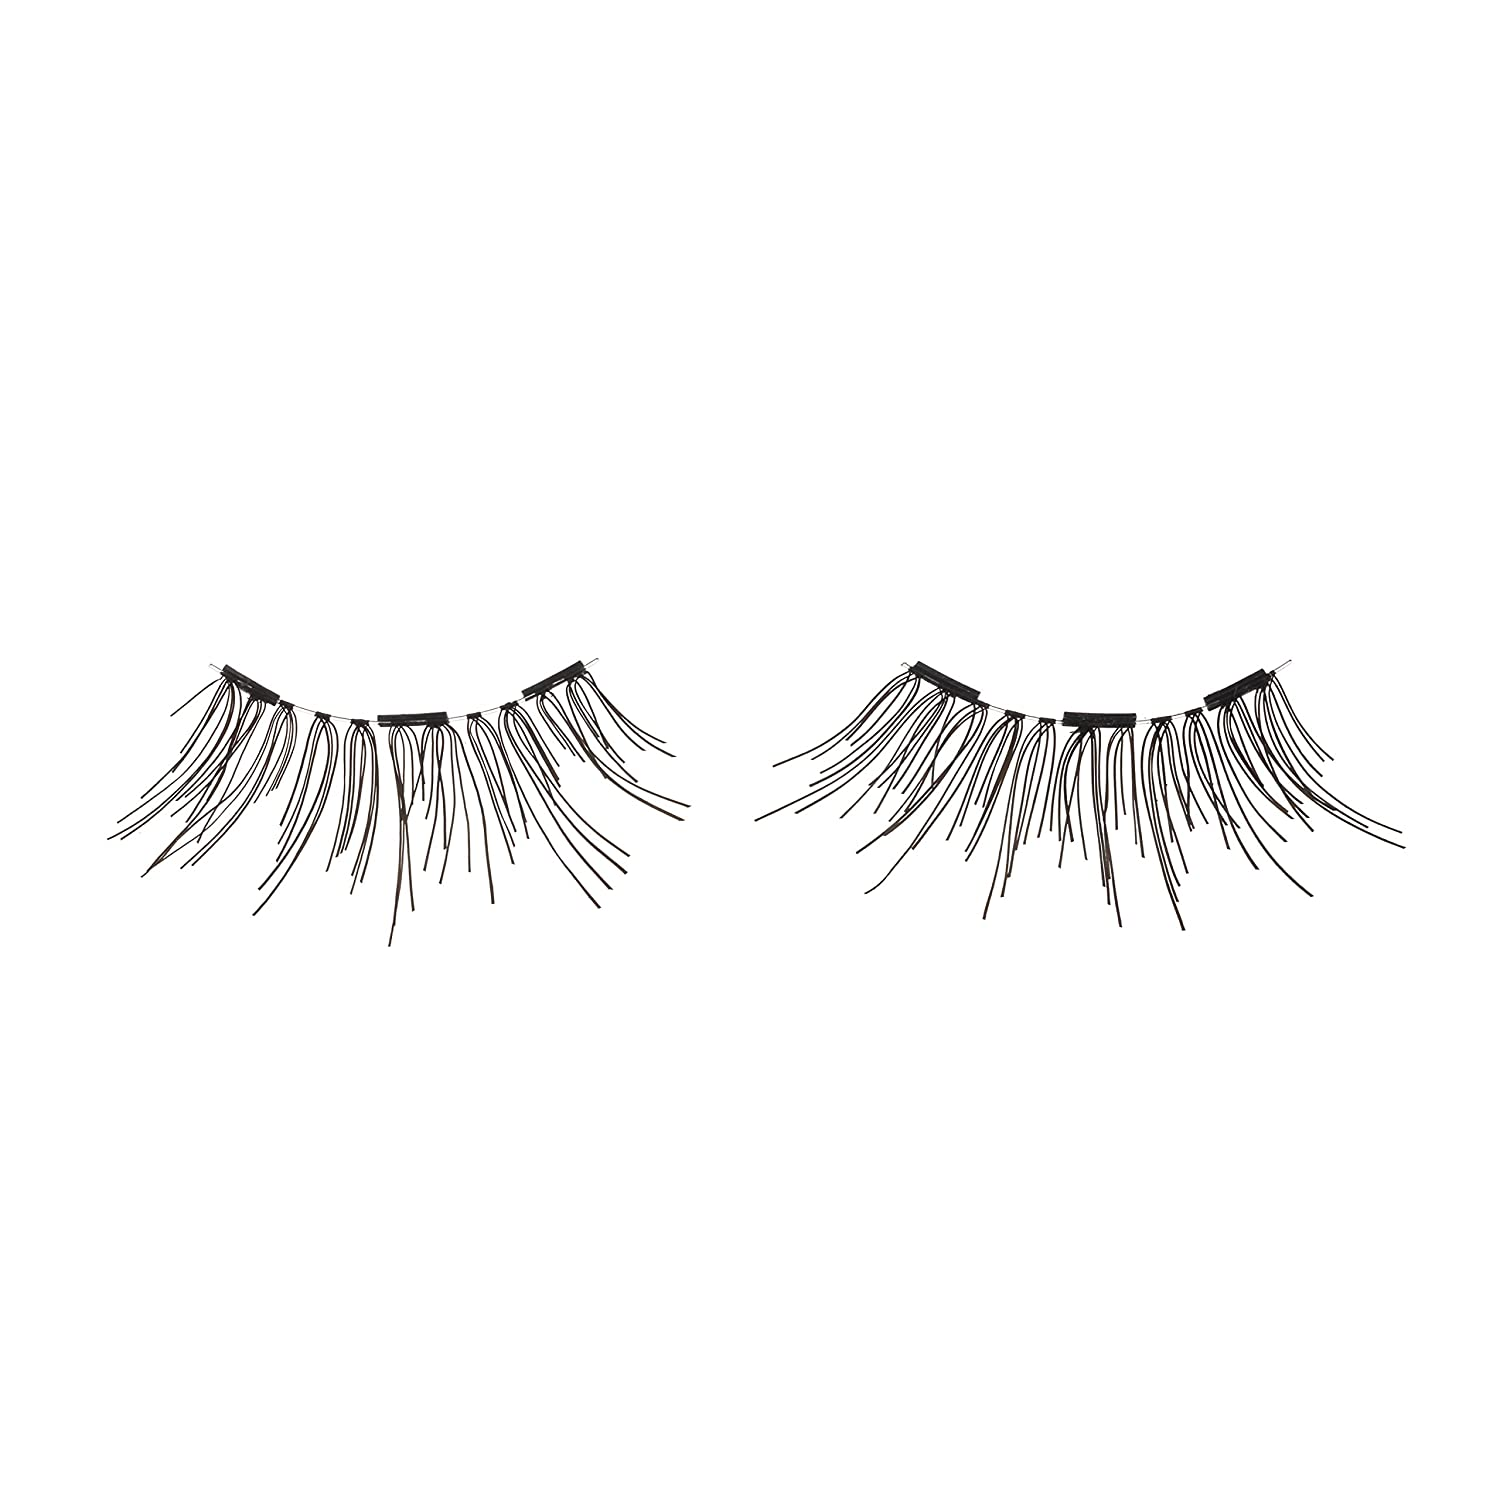 Lashed by Sandi, Magnetic Eyelashes & Magnetic Liquid Liner | Reusable Magnetic Eyelashes | False Magnetic Eye Lashes for Natural Look w/Invisible Band, Ultra-Light Magnets & Glue Free